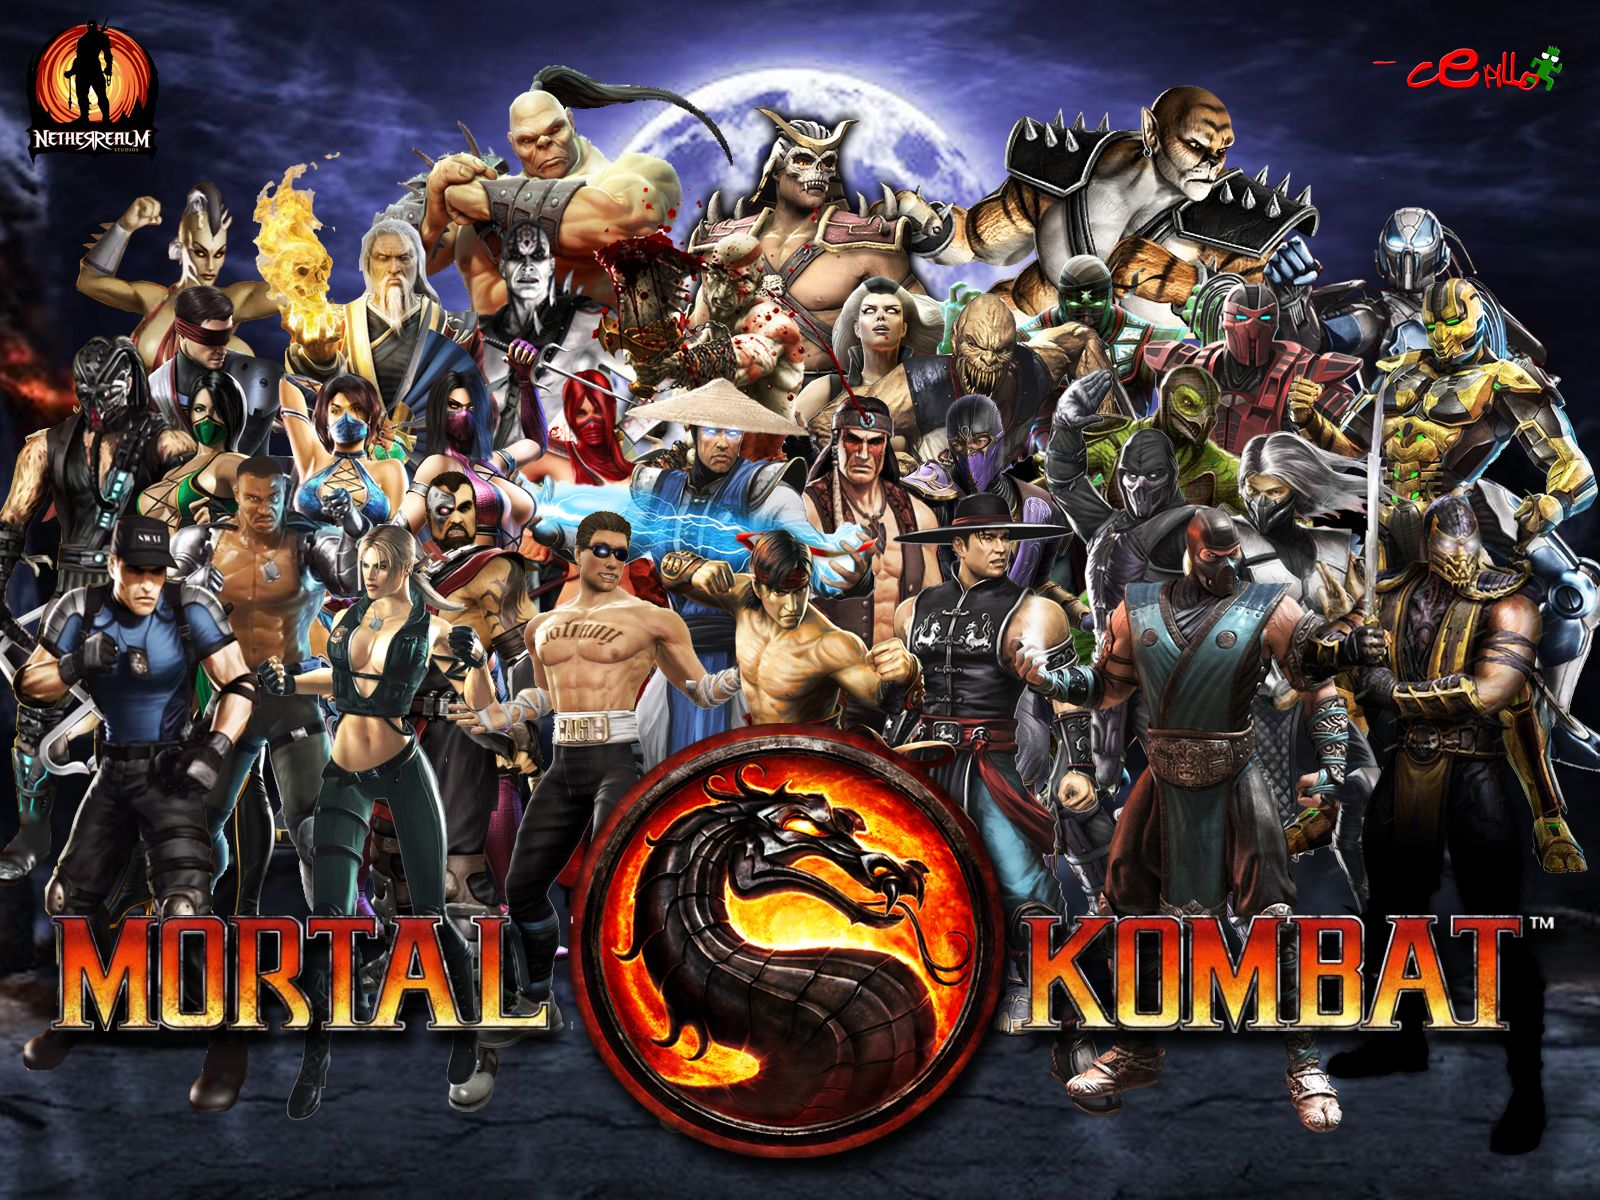 Mortal Kombat 9 is my favorite of the franchise  Perfect roster once